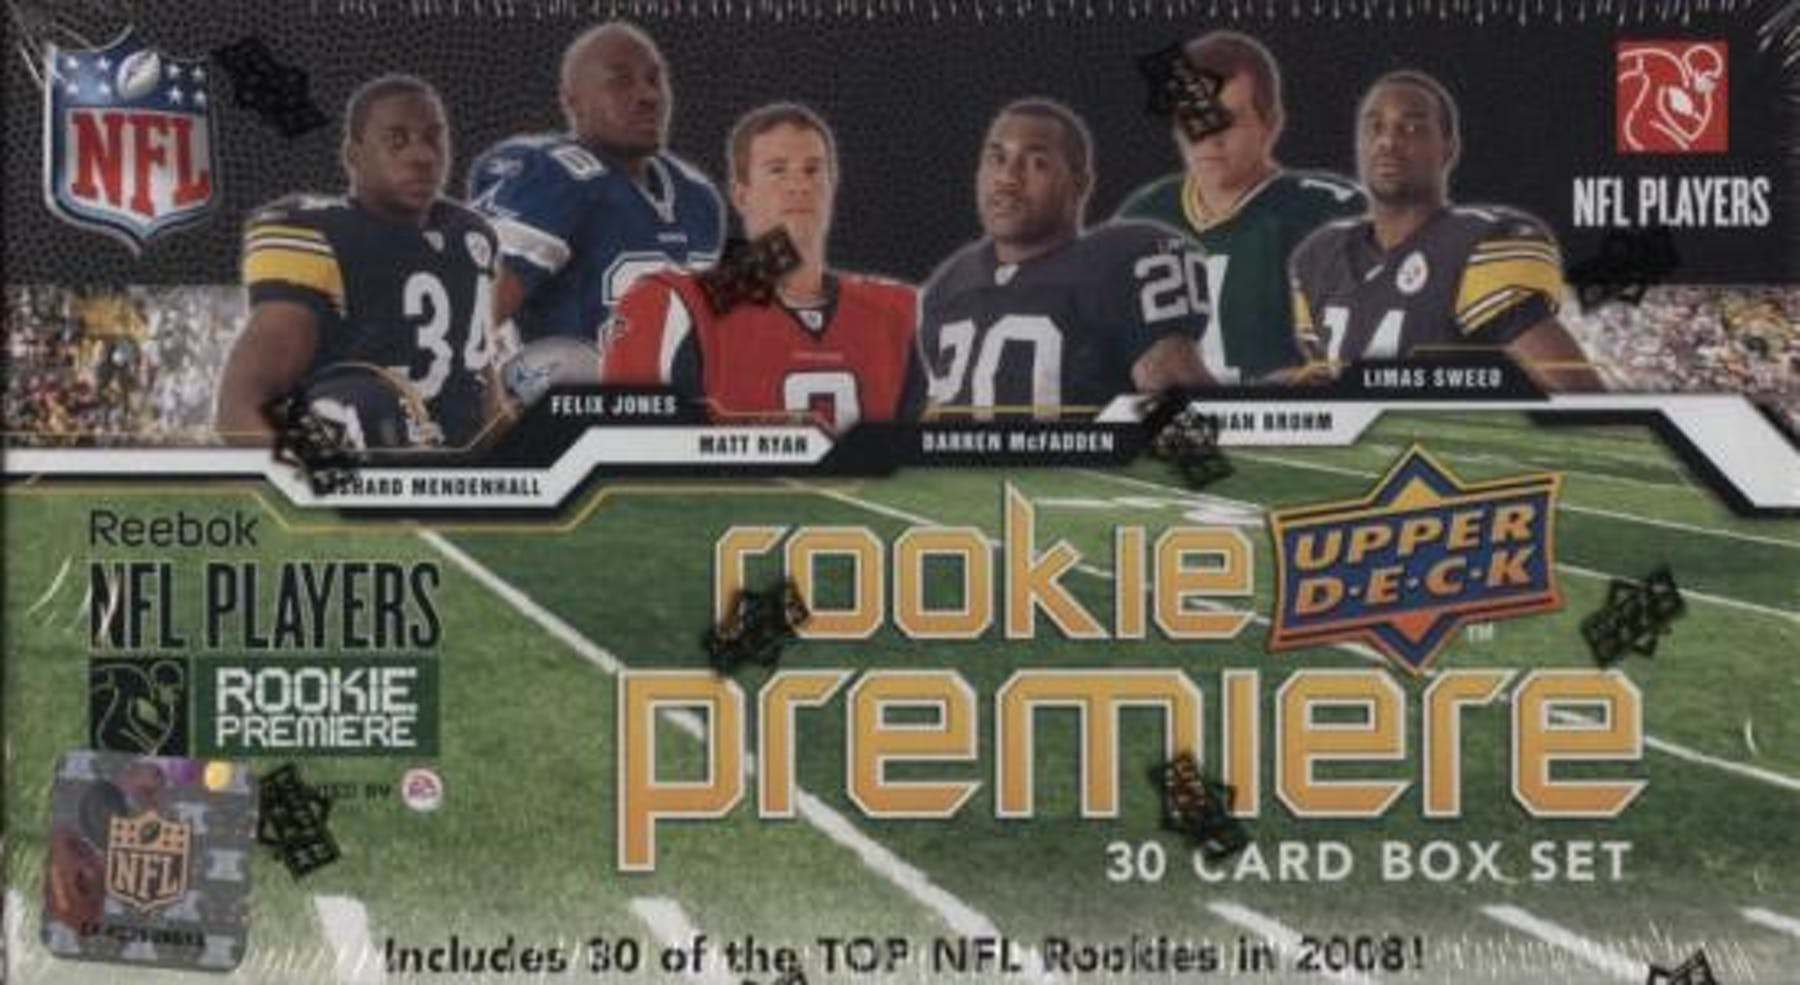 2008 Upper Deck Rookie Premiere Football Hobby Set Box